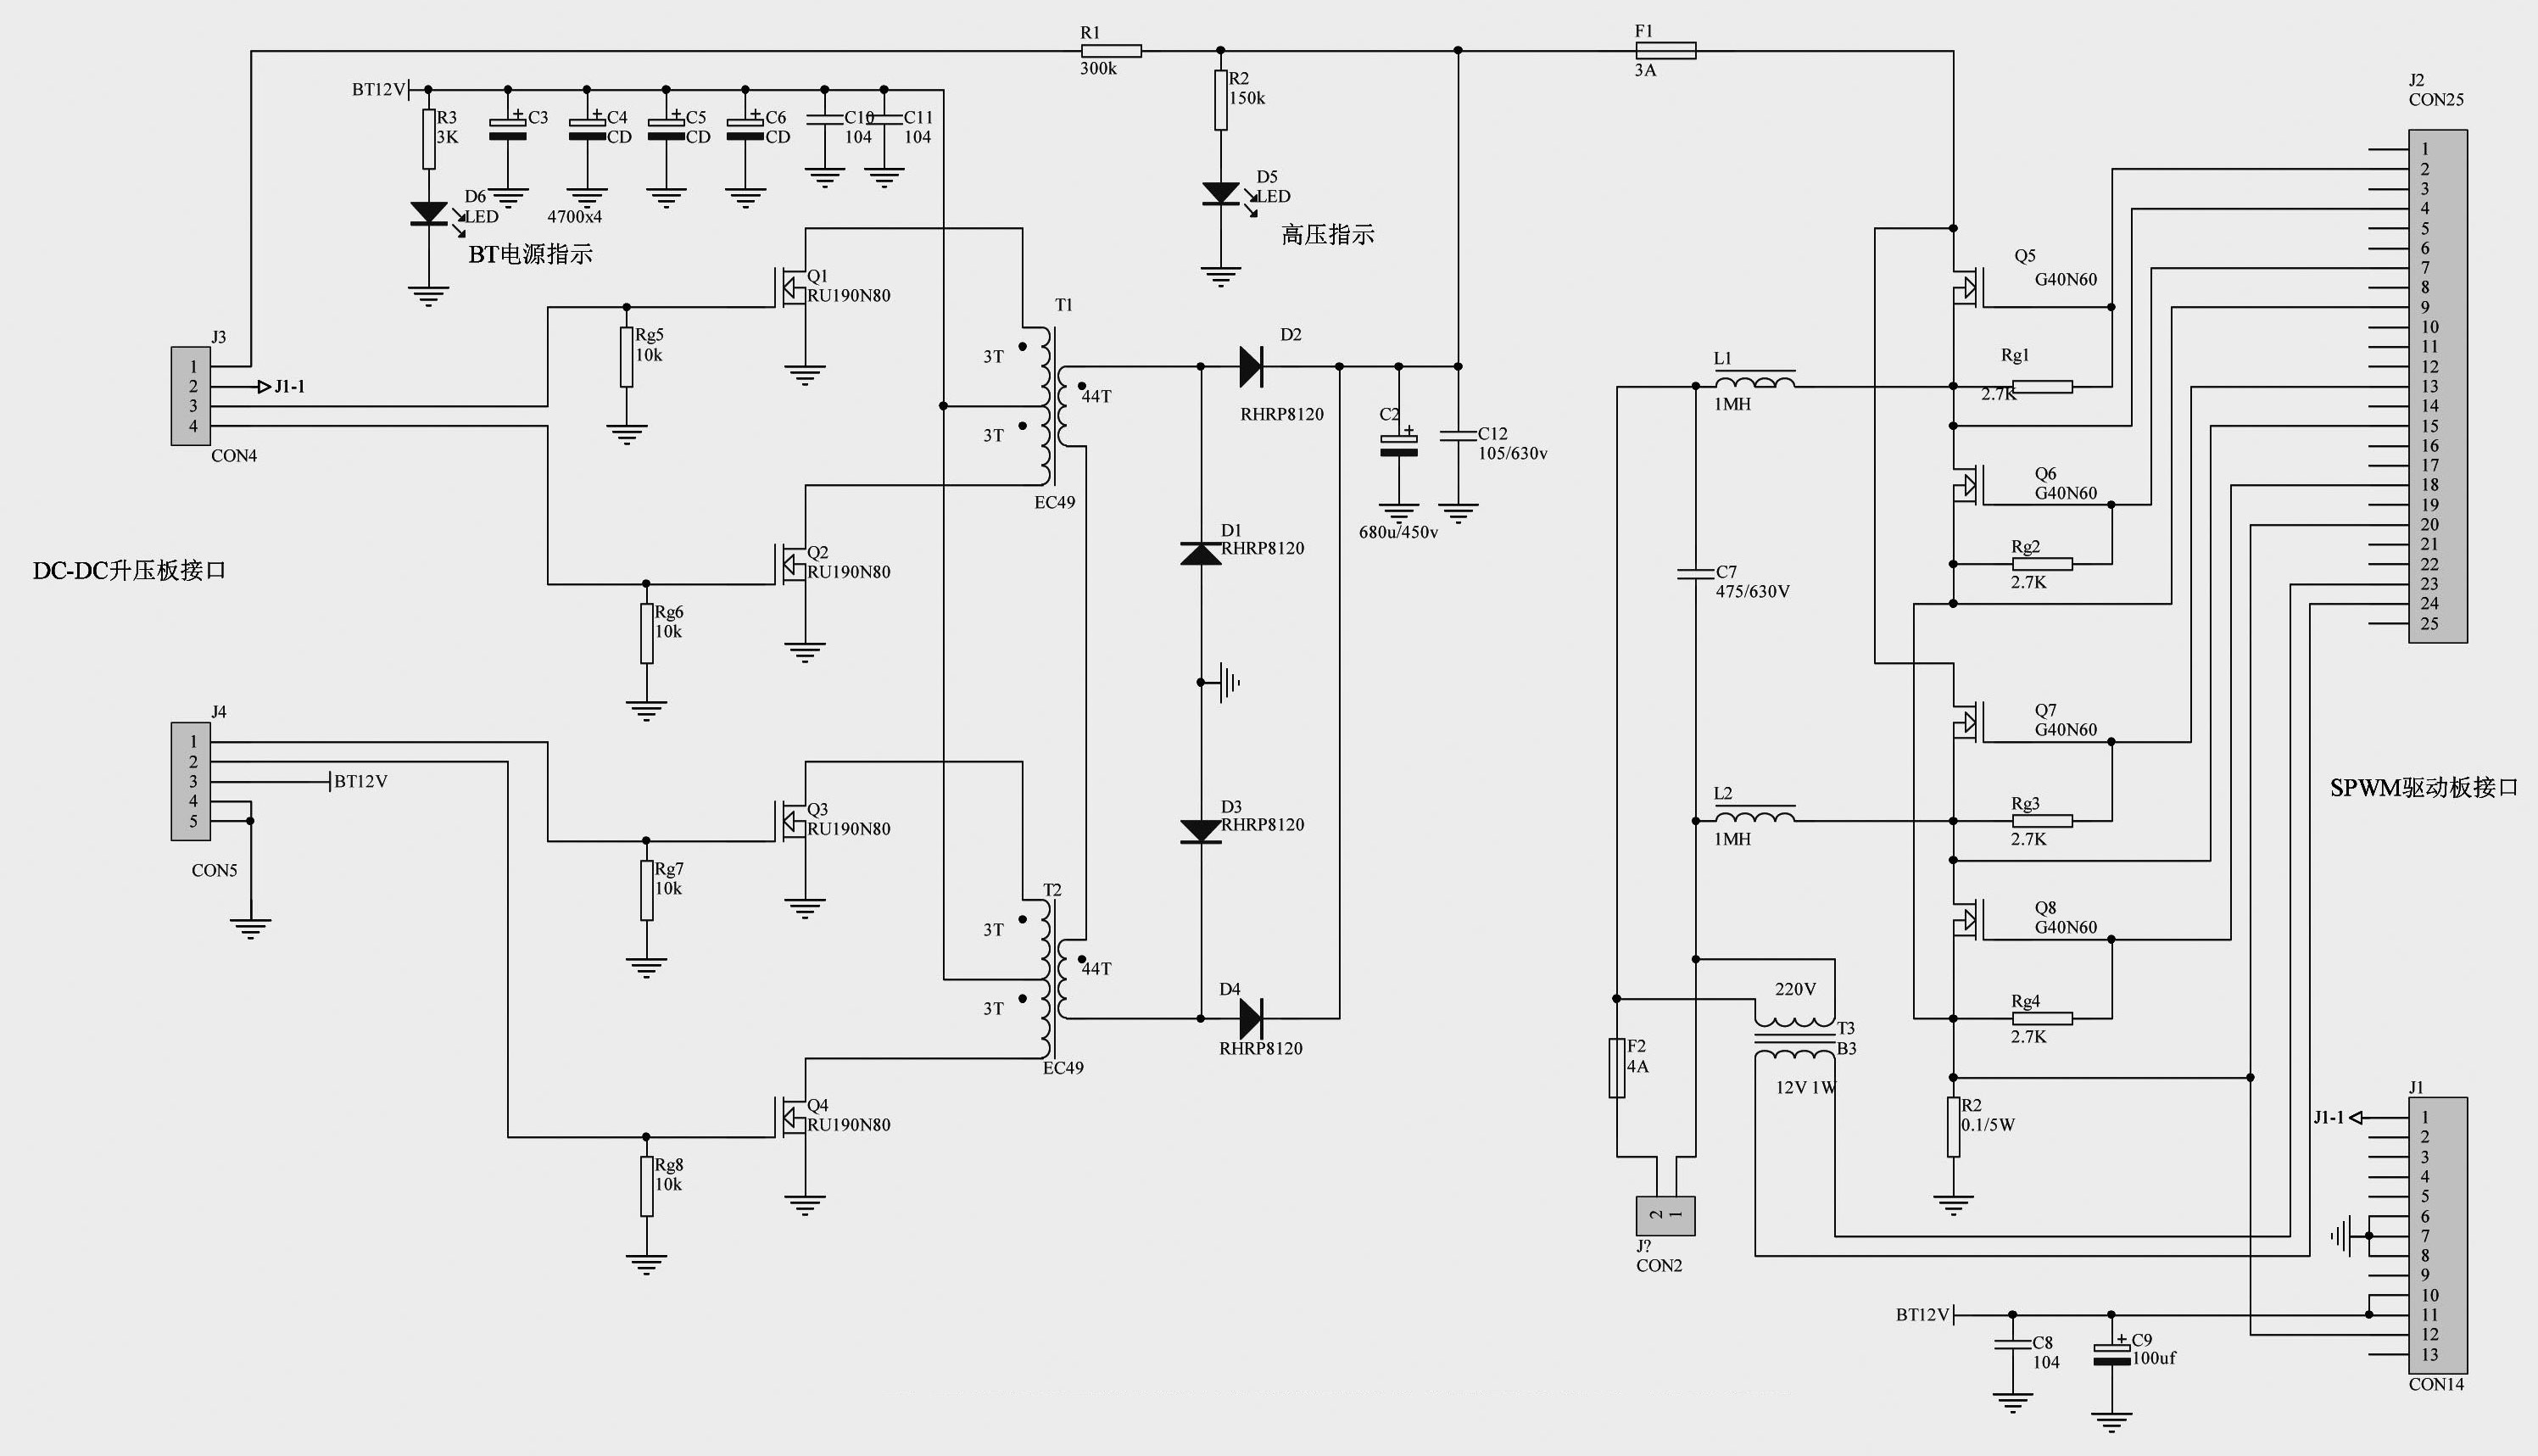 Circuit Diagram For The Master Board - Wiring Diagram Article on line transformer diagram, line heater diagram, line body diagram, 3 line diagram, line lighting, pv line diagram, line grounding diagram, one-line diagram, line filter diagram, line voltage,